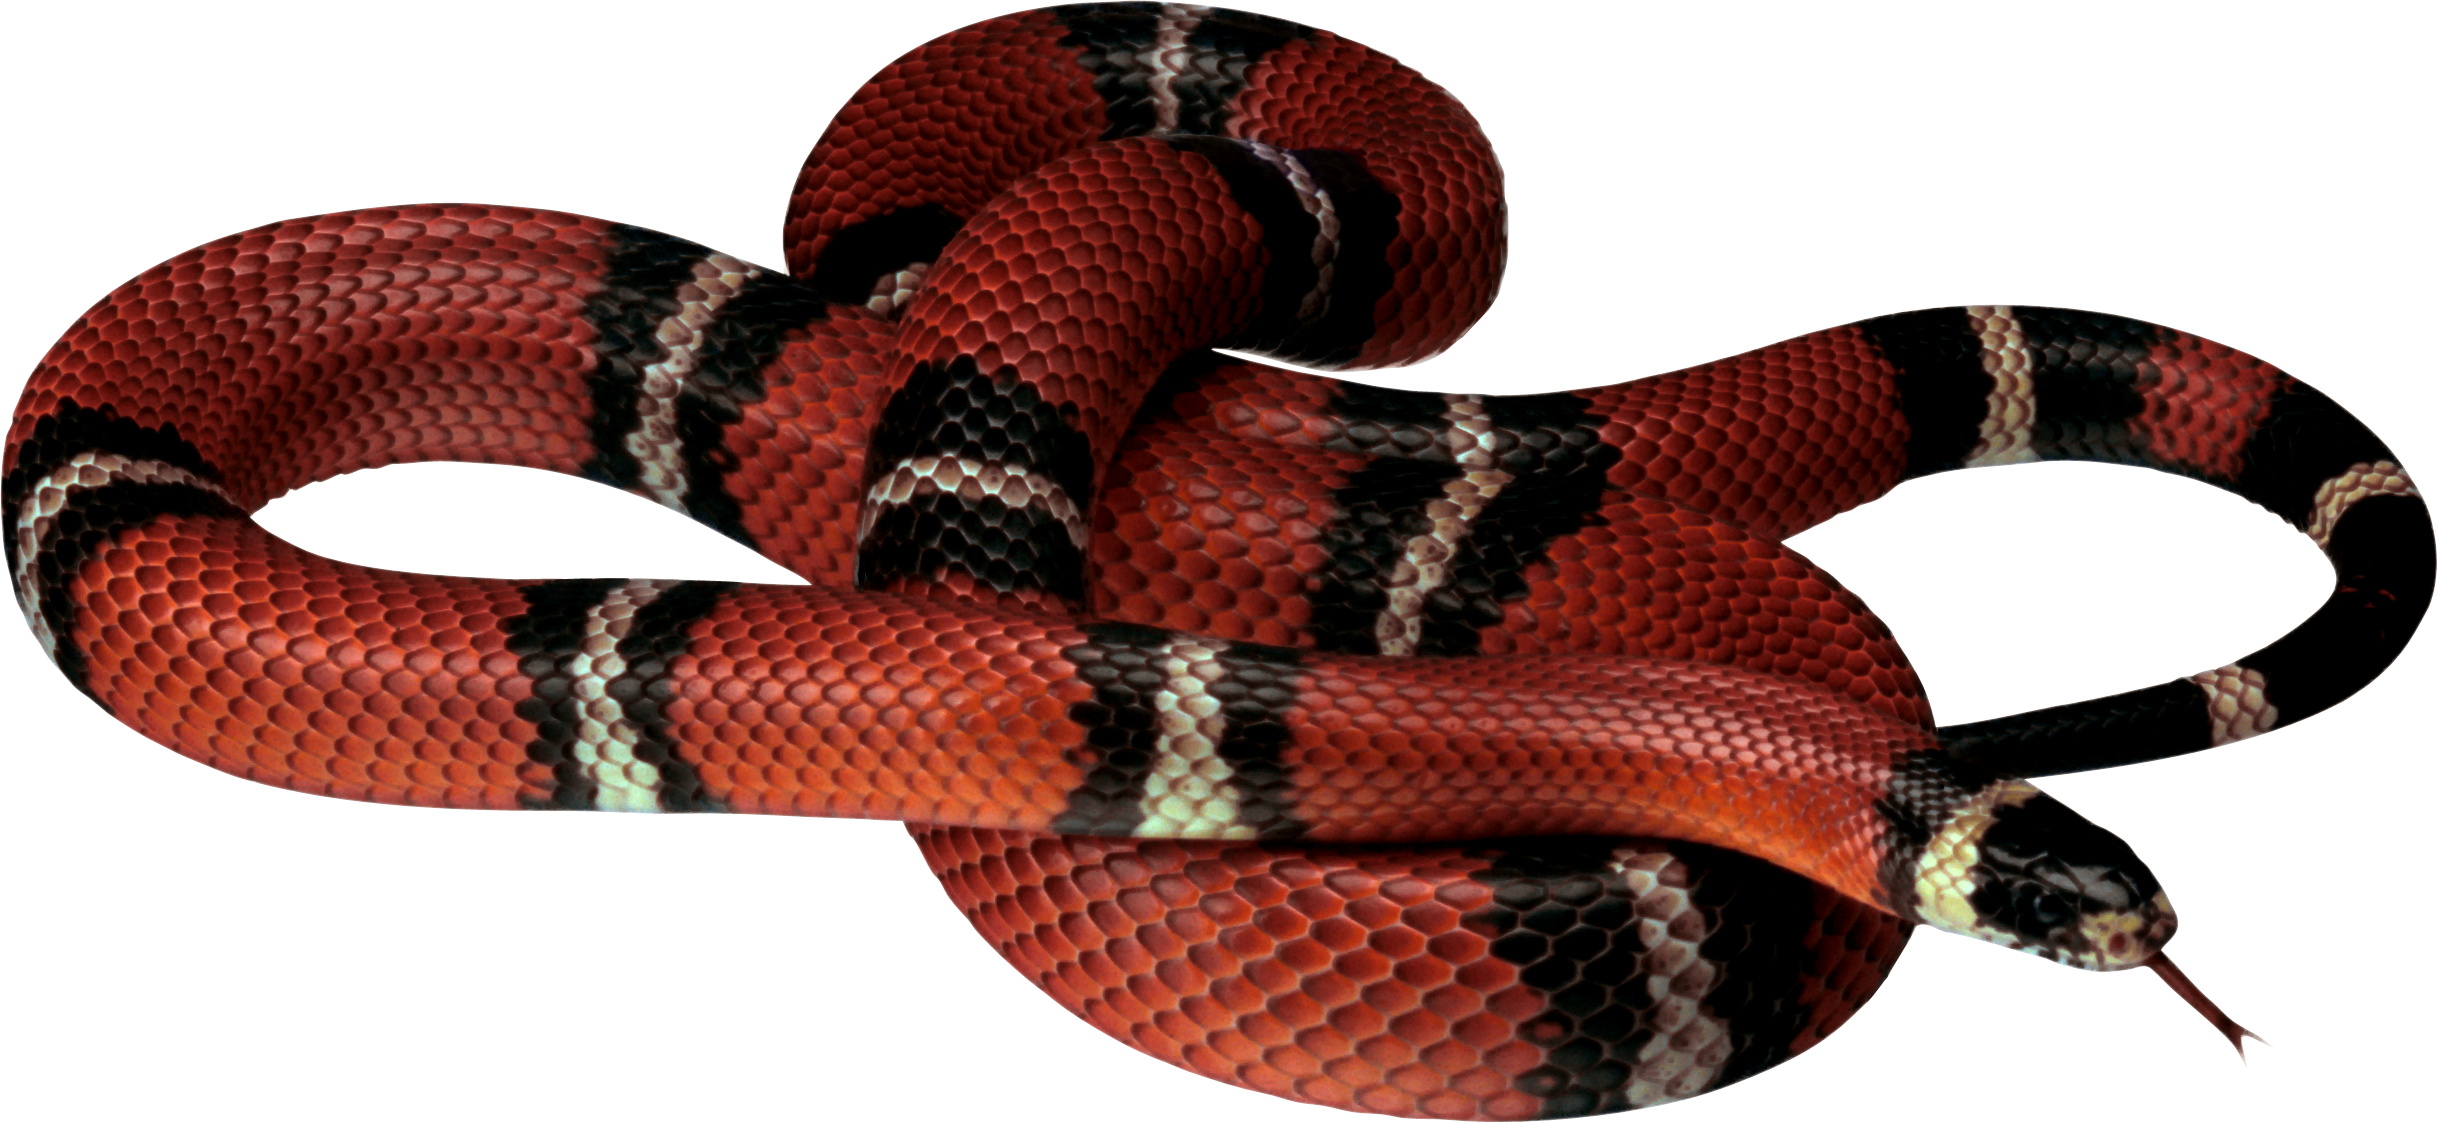 Gucci snake png, Picture #673020 gucci